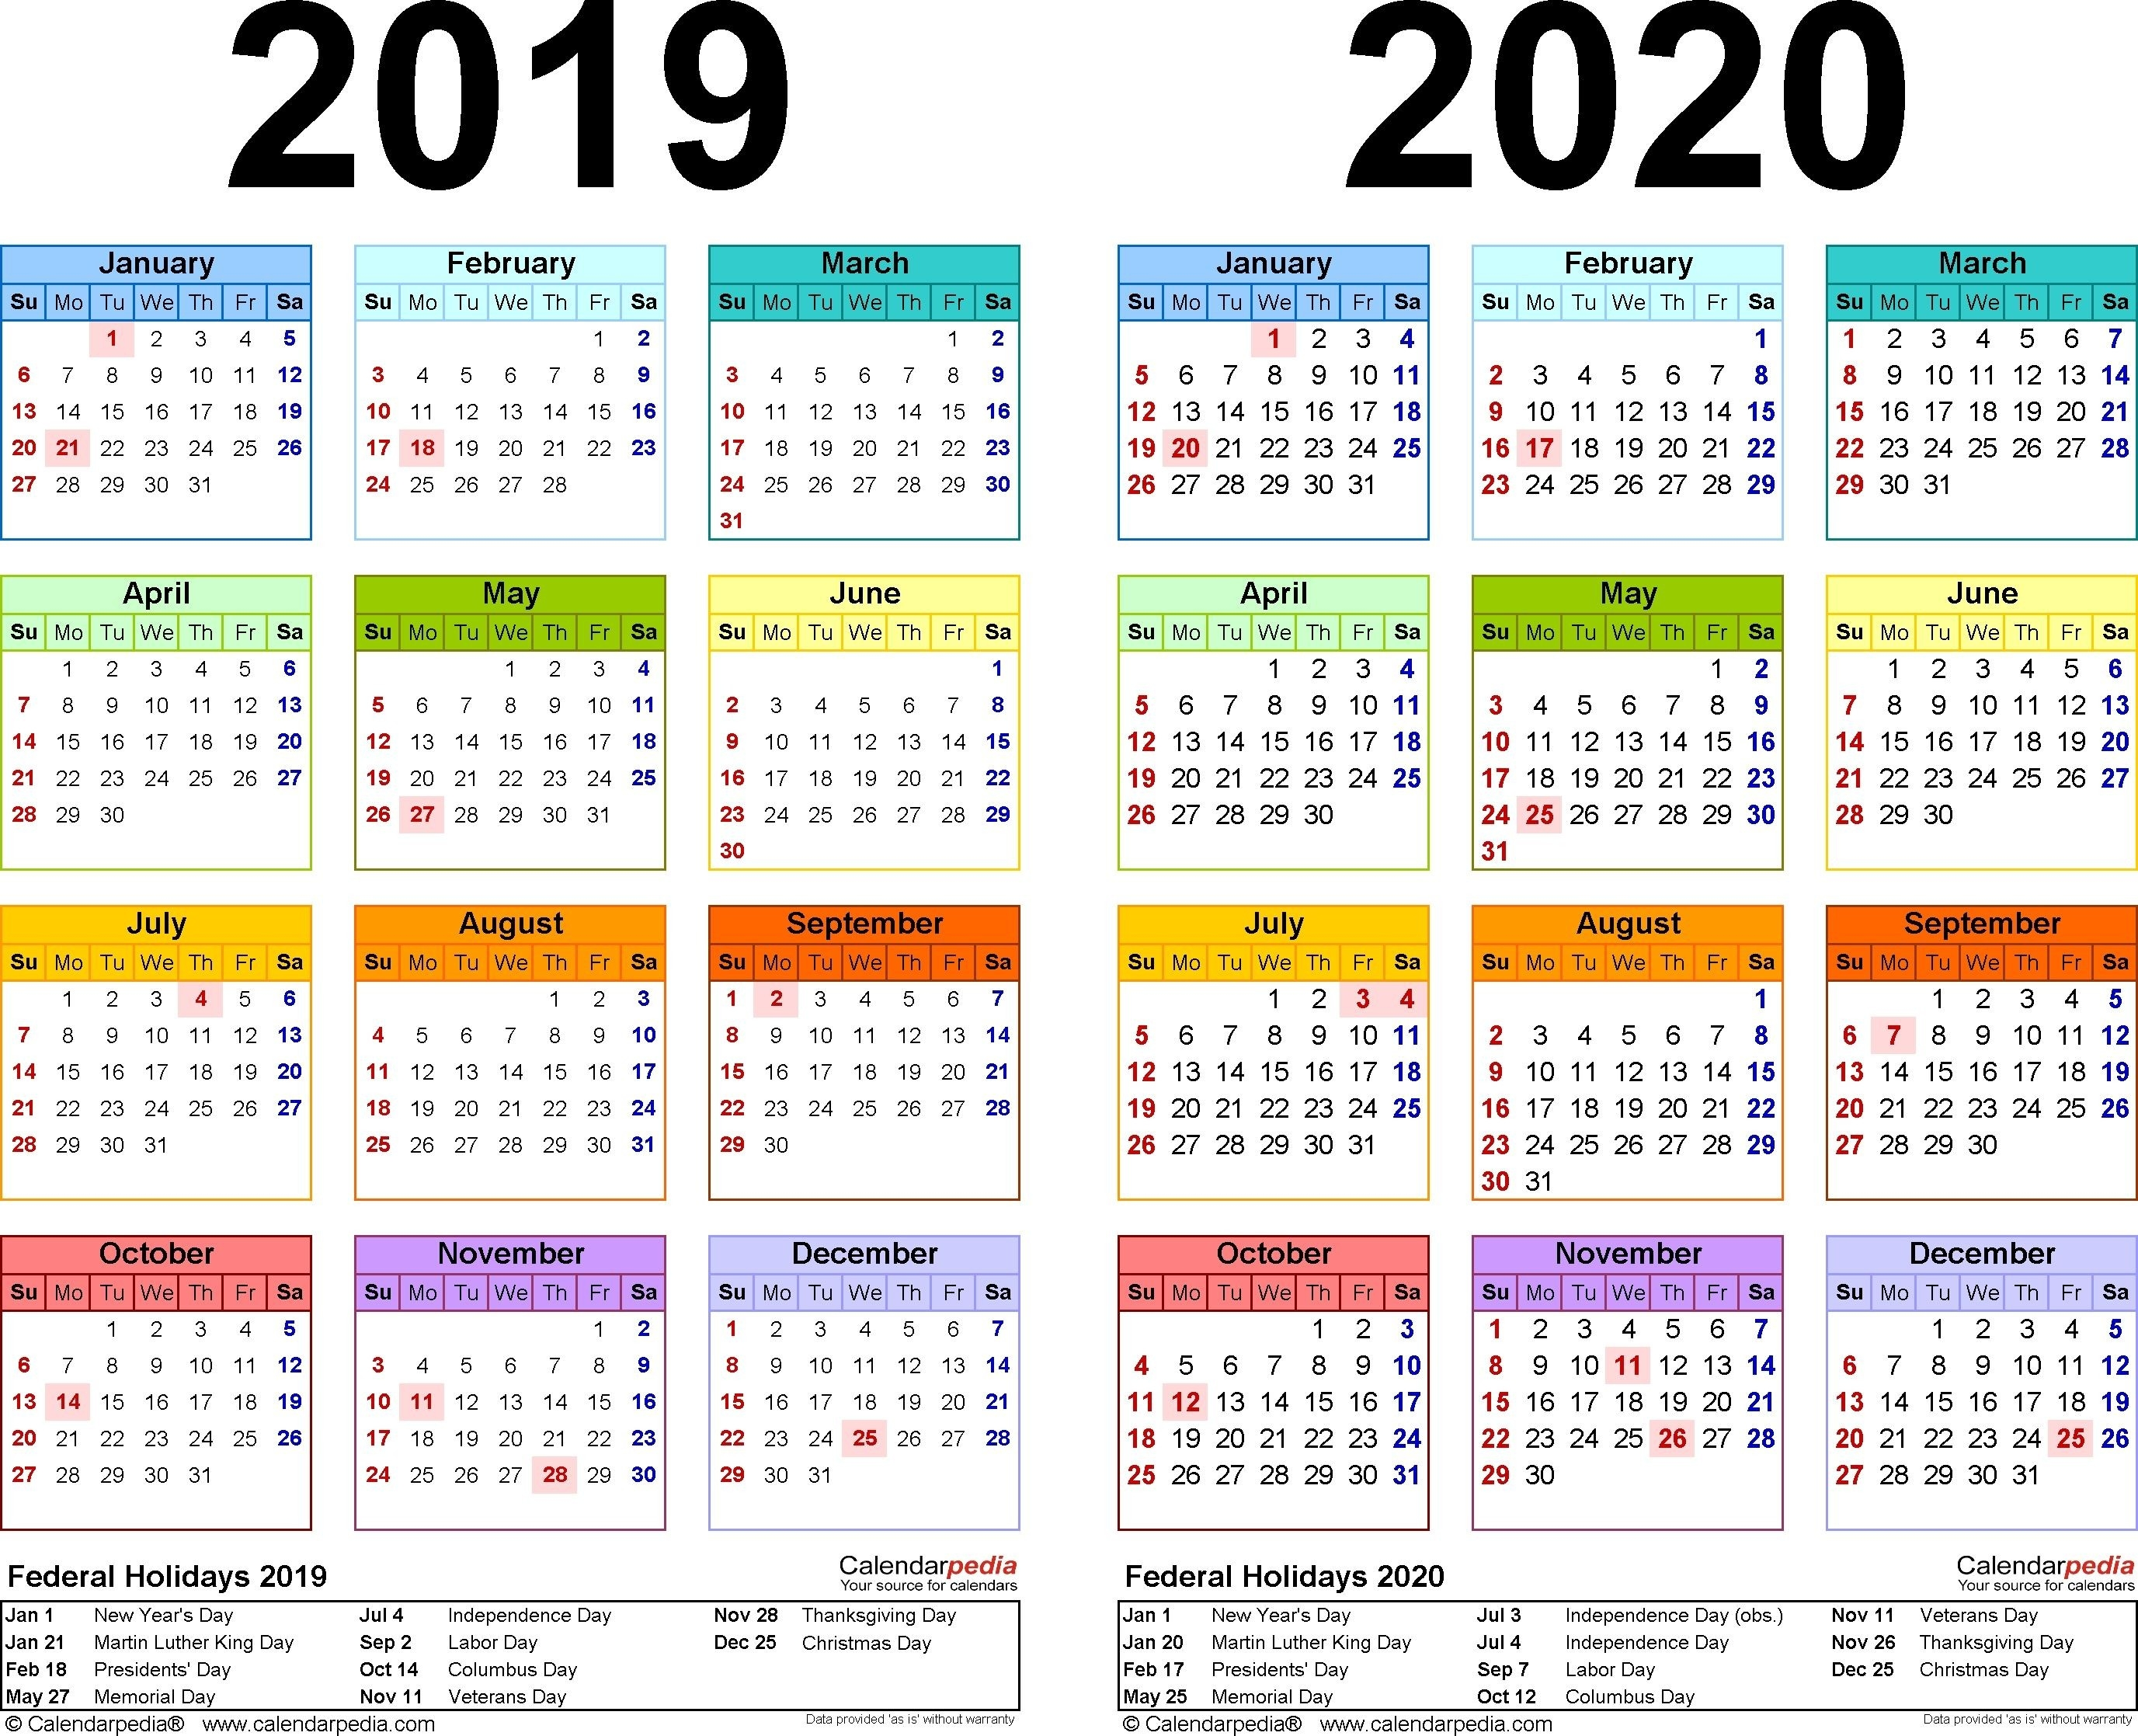 2019-2020 Calendar - Free Printable Two-Year Excel Calendars-Free Printable 2 Page Monthly Calendar 2020